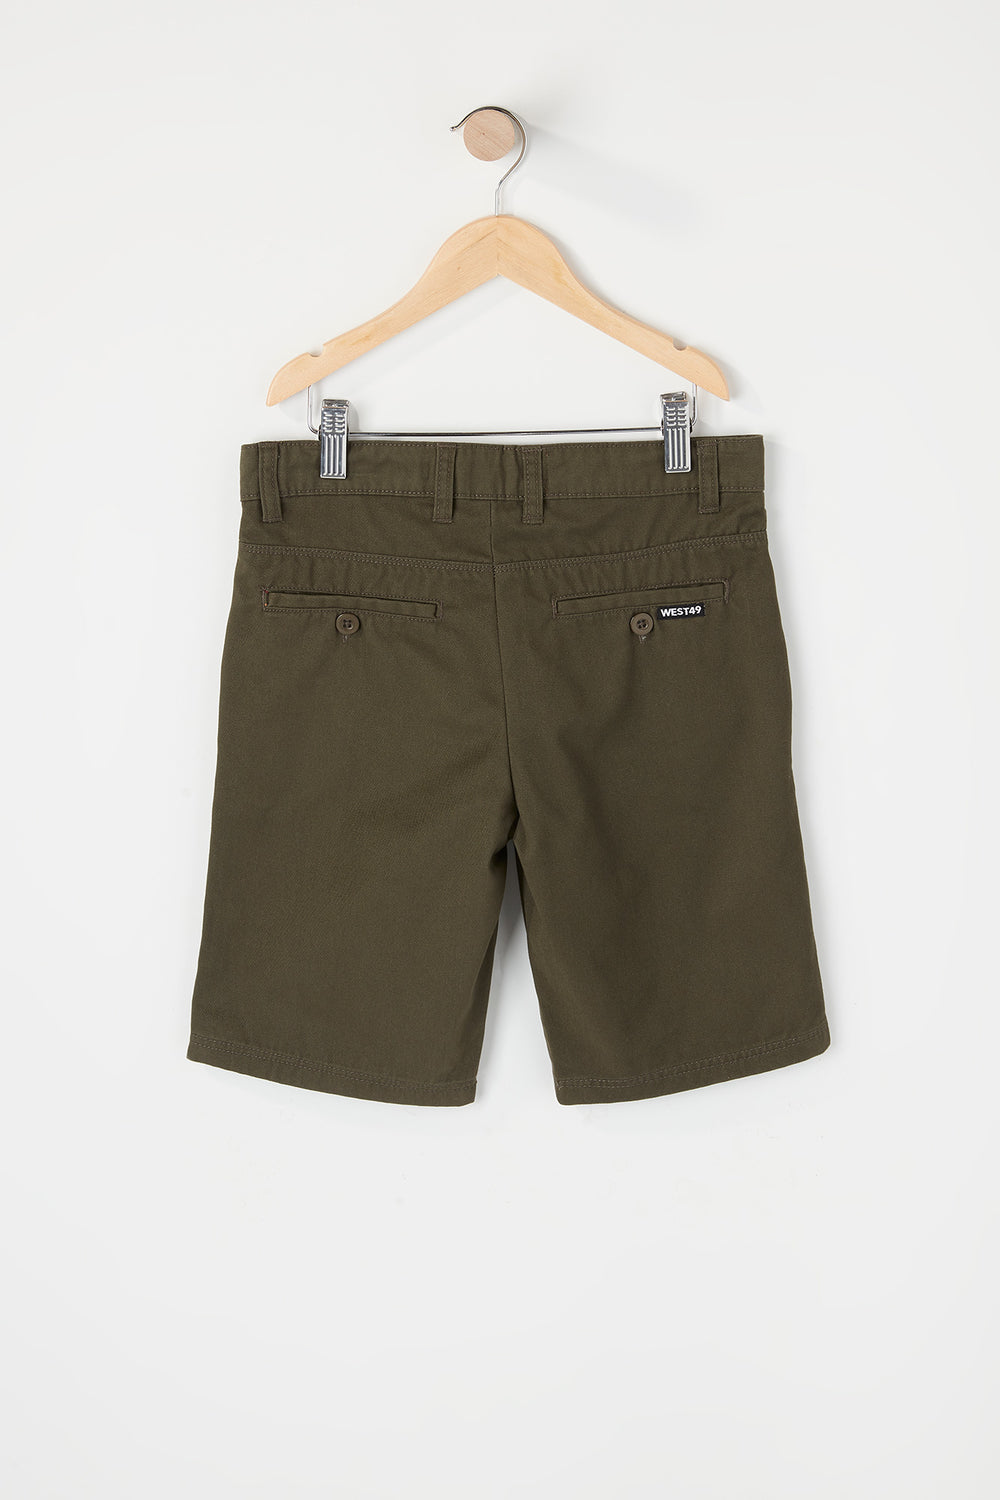 Short de Ville West49 Garçon Kaki